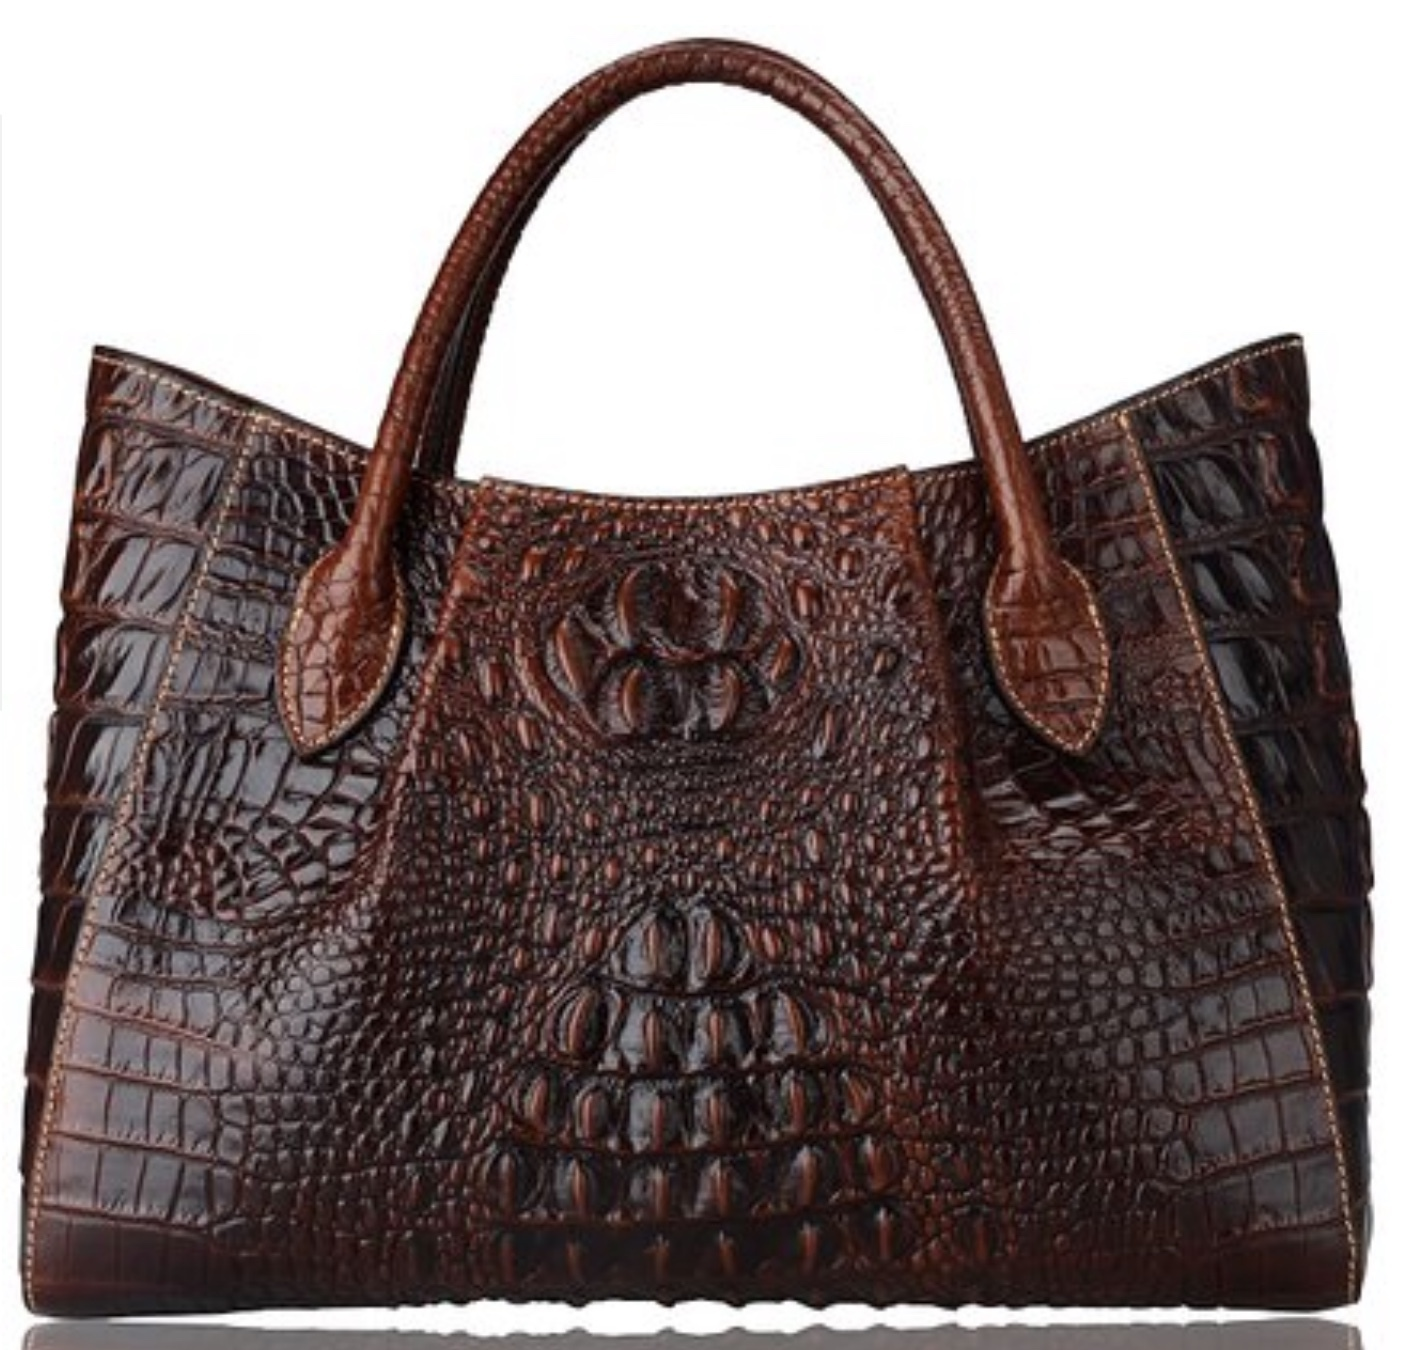 New Italian Leather Crocodile Embossed Luxury Tote Handbag Satchel 1629